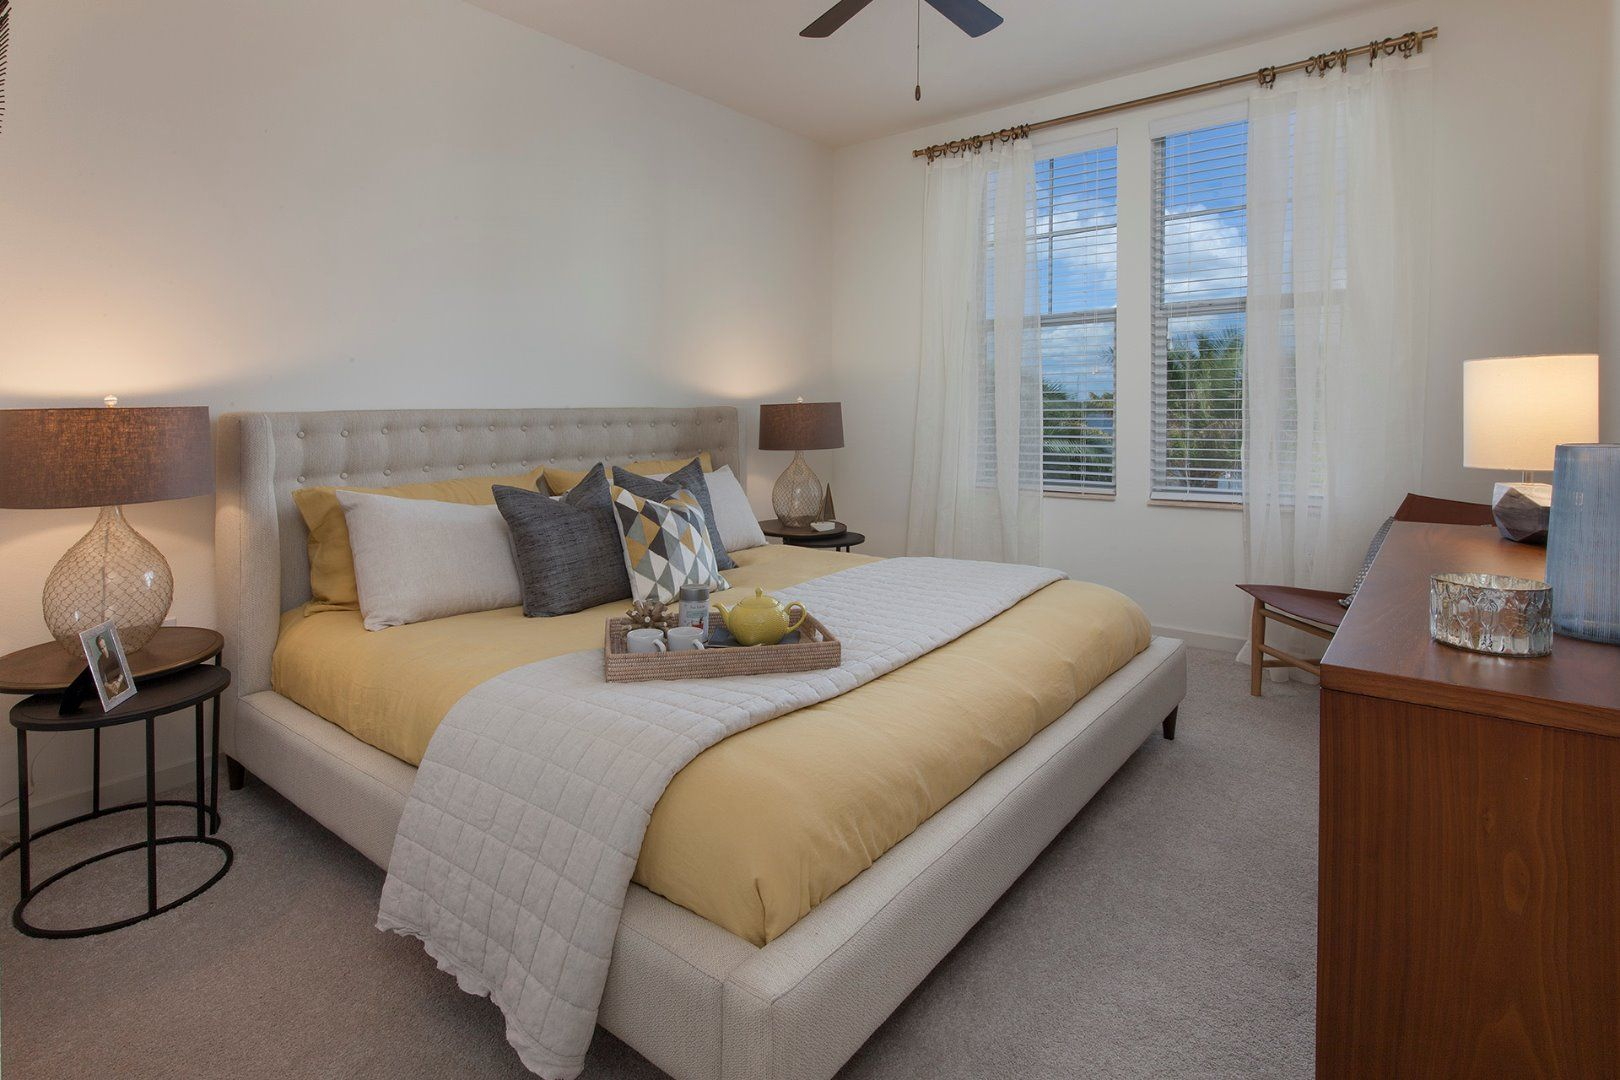 Bedroom with ceiling fan and large bed